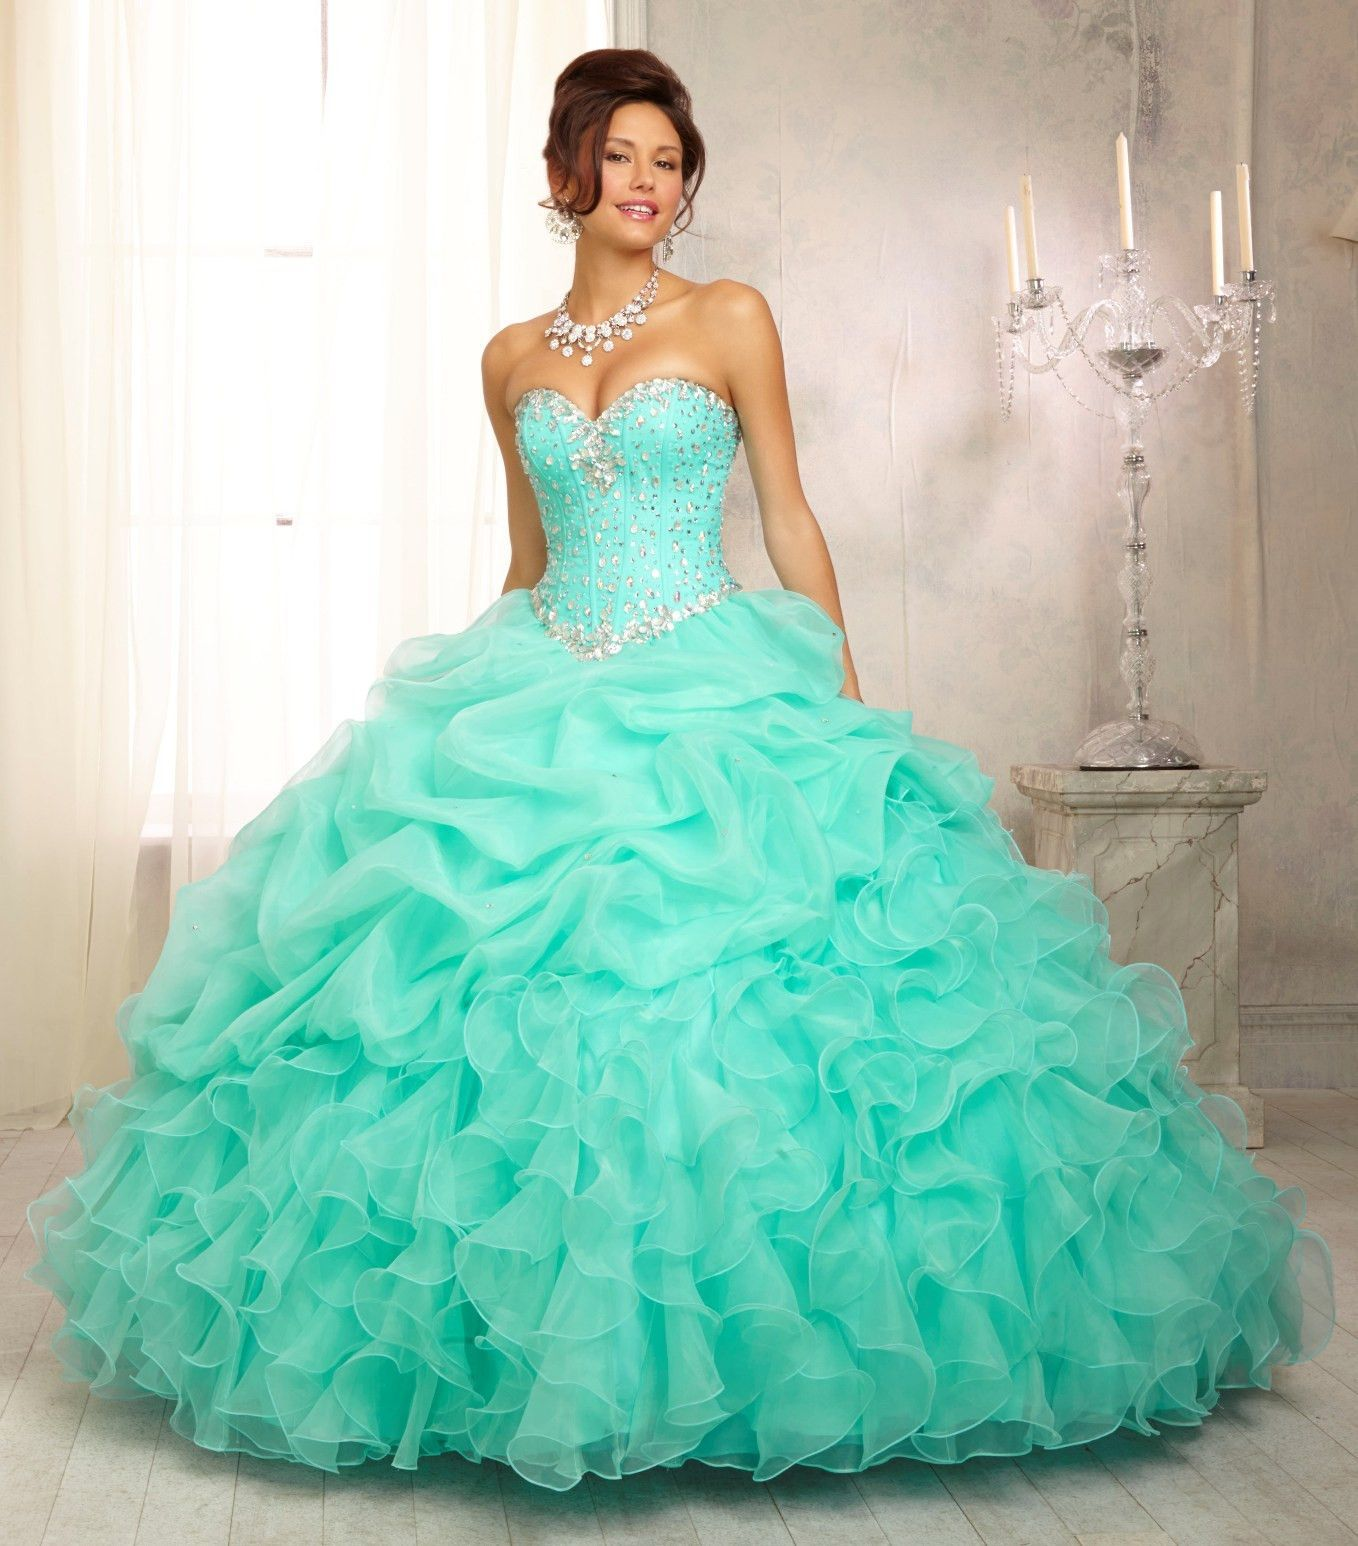 Strapless Ruffled Quinceanera Dress By Mori Lee Vizcaya